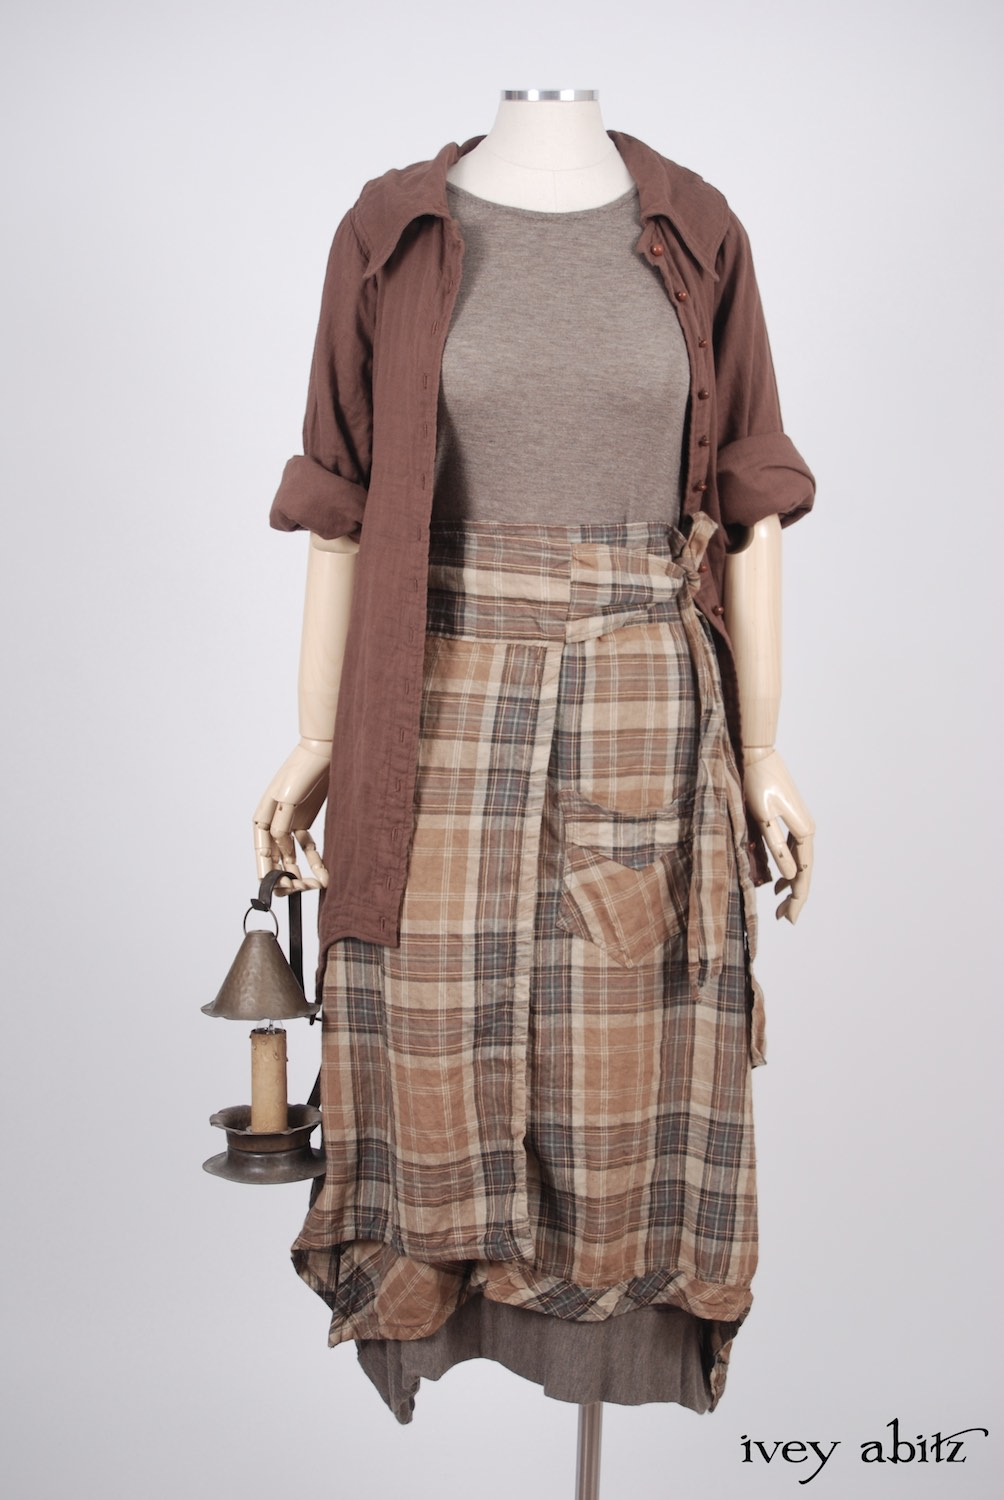 Ivey Abitz - Chittister Shirt Jacket in Blushed Double Layered Voile  - Coulson Frock in Flaxseed Featherlight Knit, High Water Length - Highlands Skirt in Eternal Spring Plaid Linen